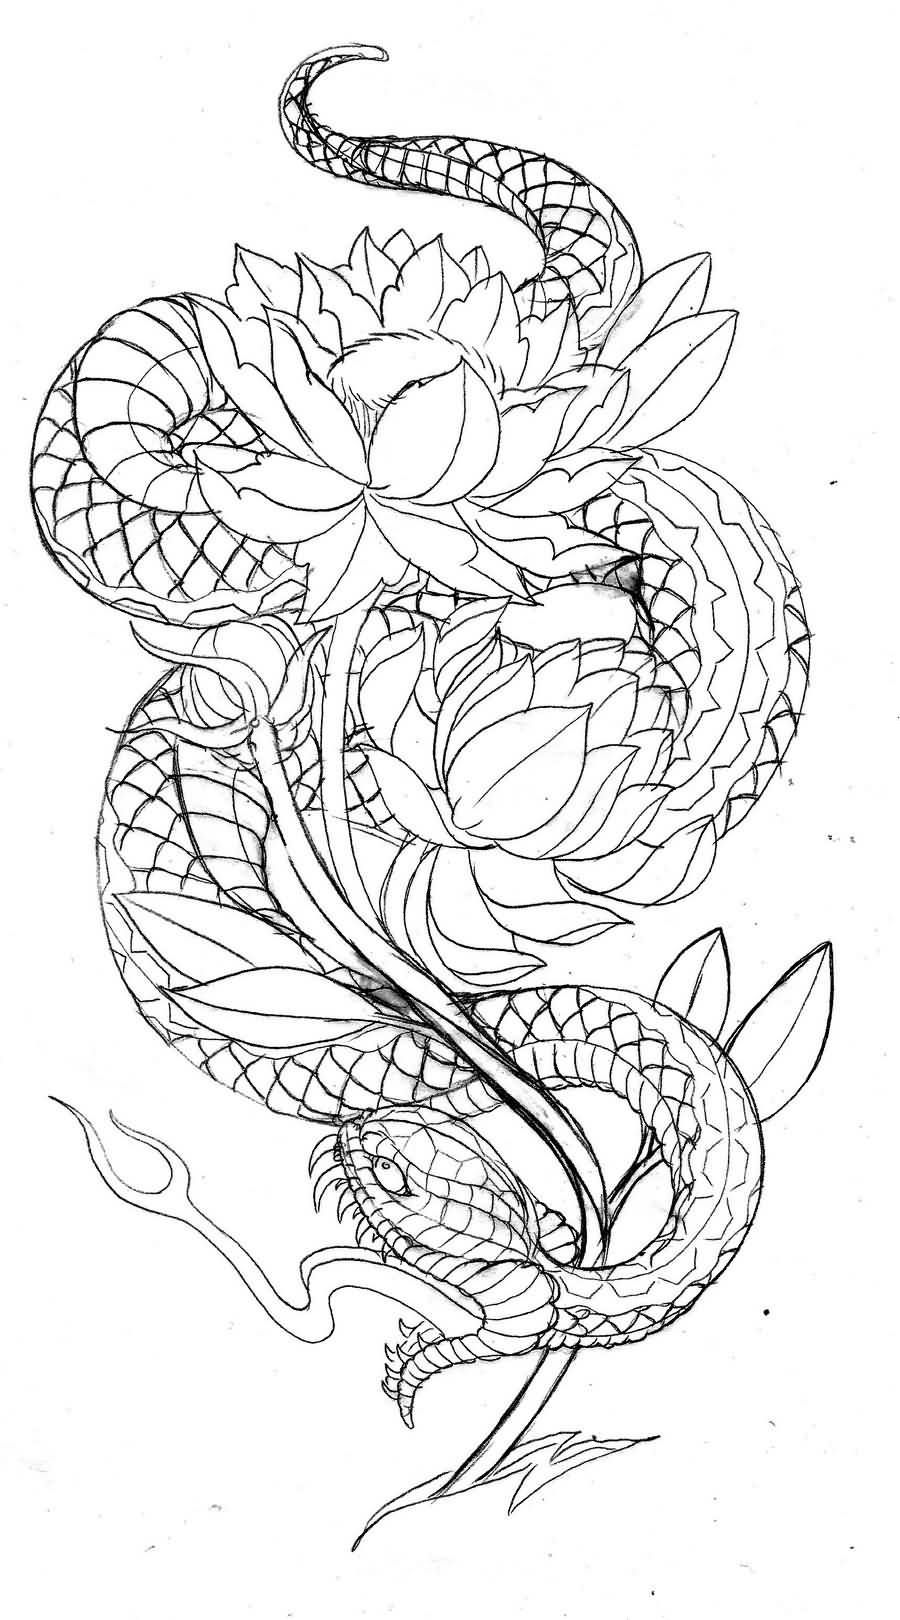 Tattoo Outline Designs : tattoo, outline, designs, Image, Result, Dragon, Japanese, Outline, Snake, Tattoo, Design,, Tattoo,